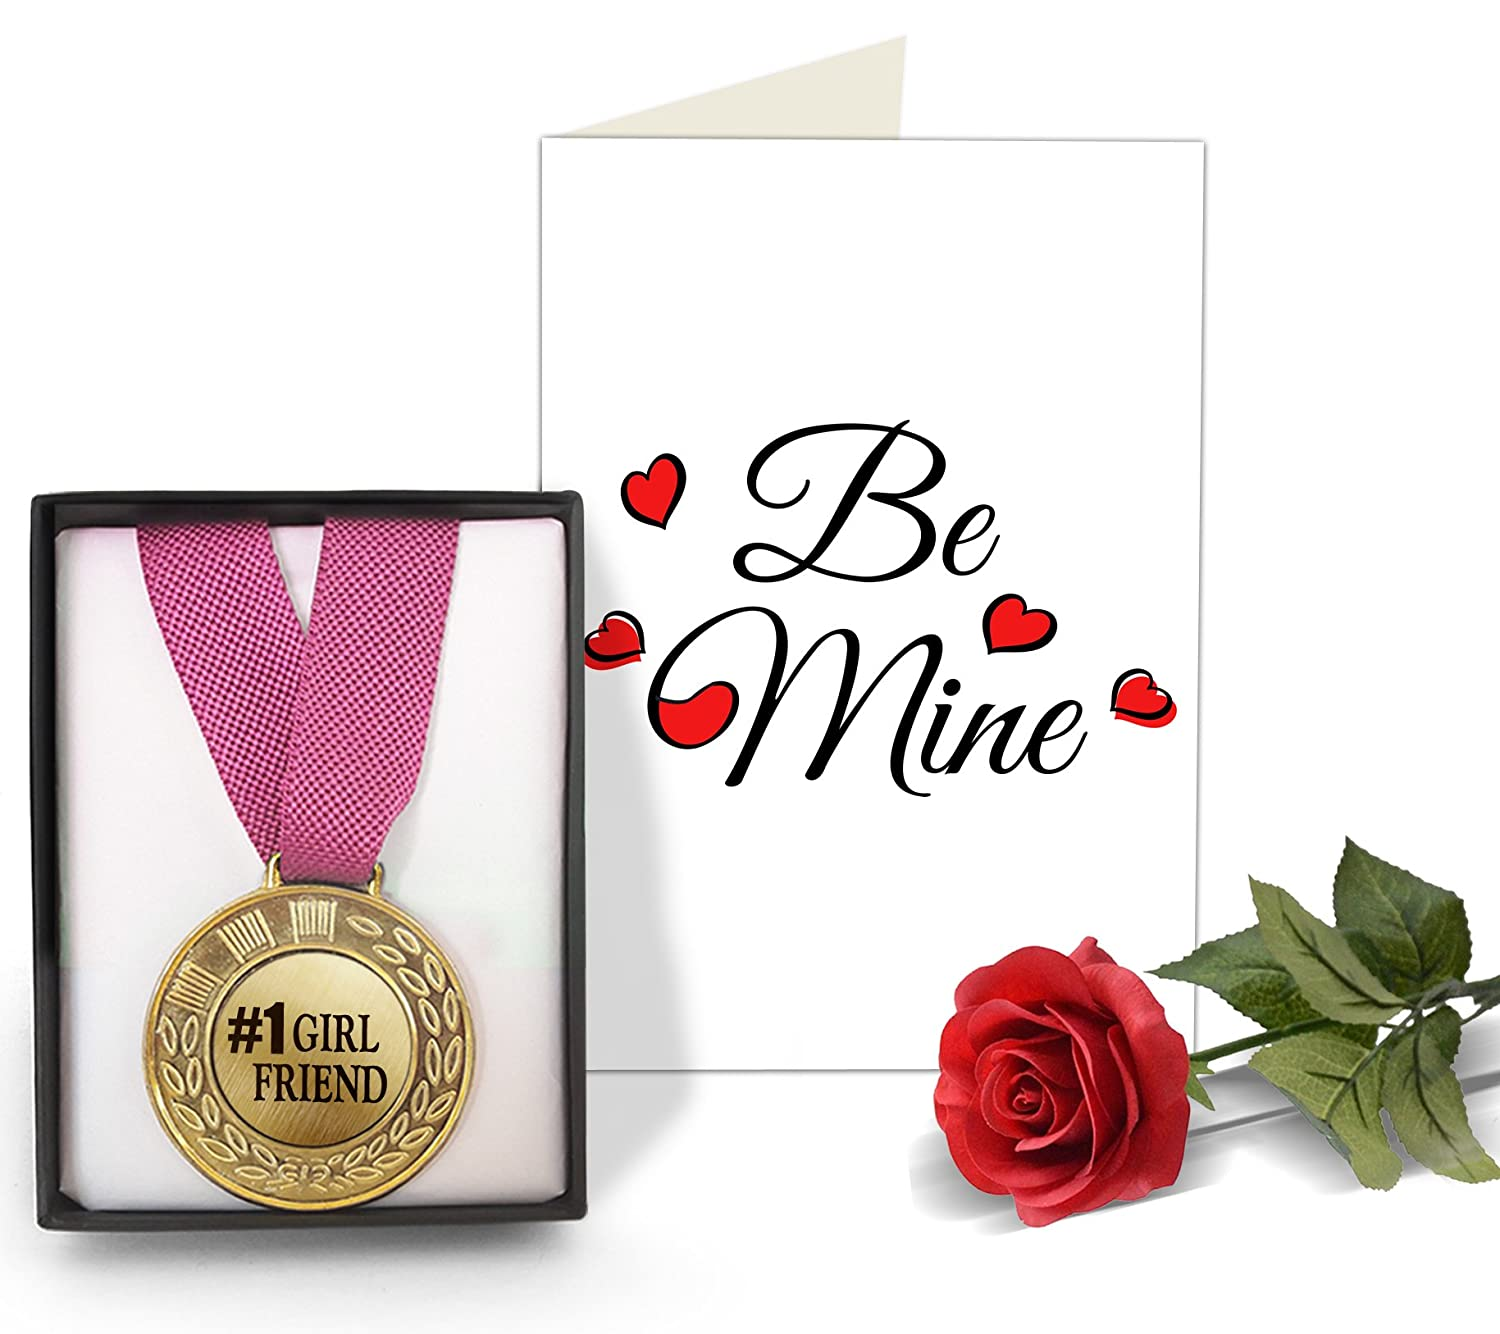 TIED RIBBONS Golden Medal with Greeting Card and Artificial